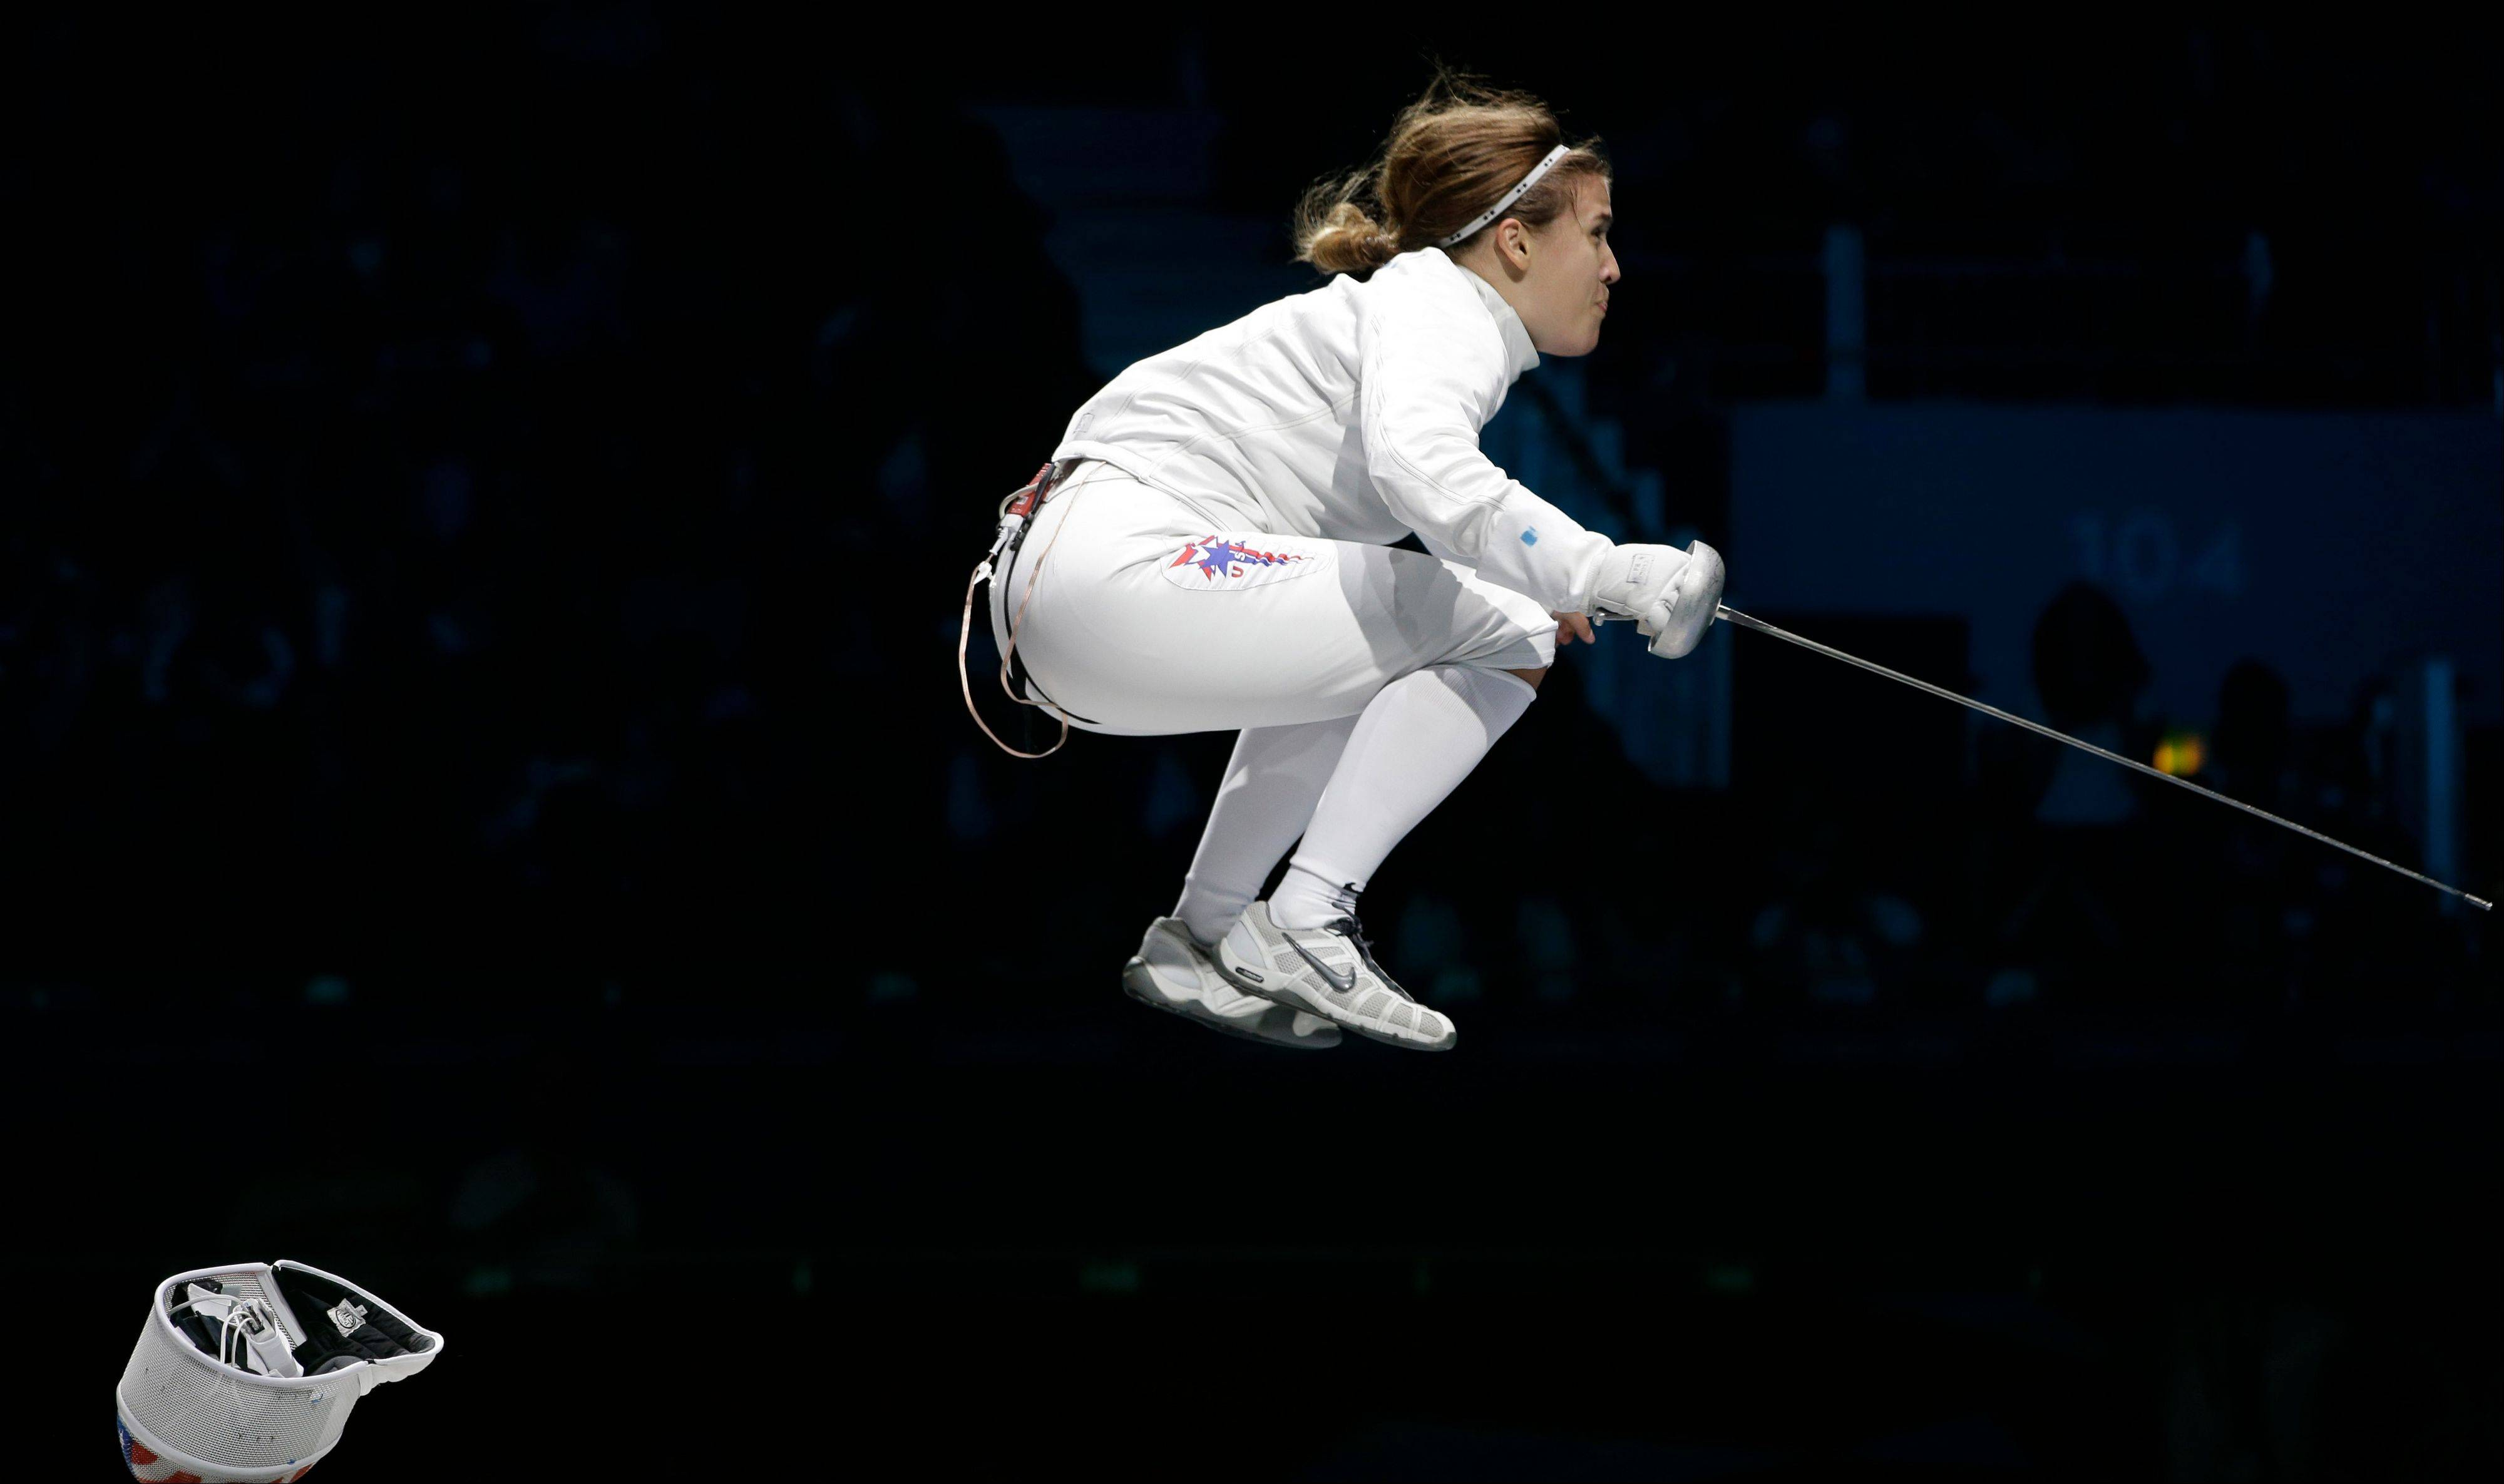 United States' Courtney Hurley celebrates after her team defeated Russia in the bronze medal match in women's team epee fencing competition at the 2012 Summer Olympics, Saturday, Aug. 4, 2012, in London.